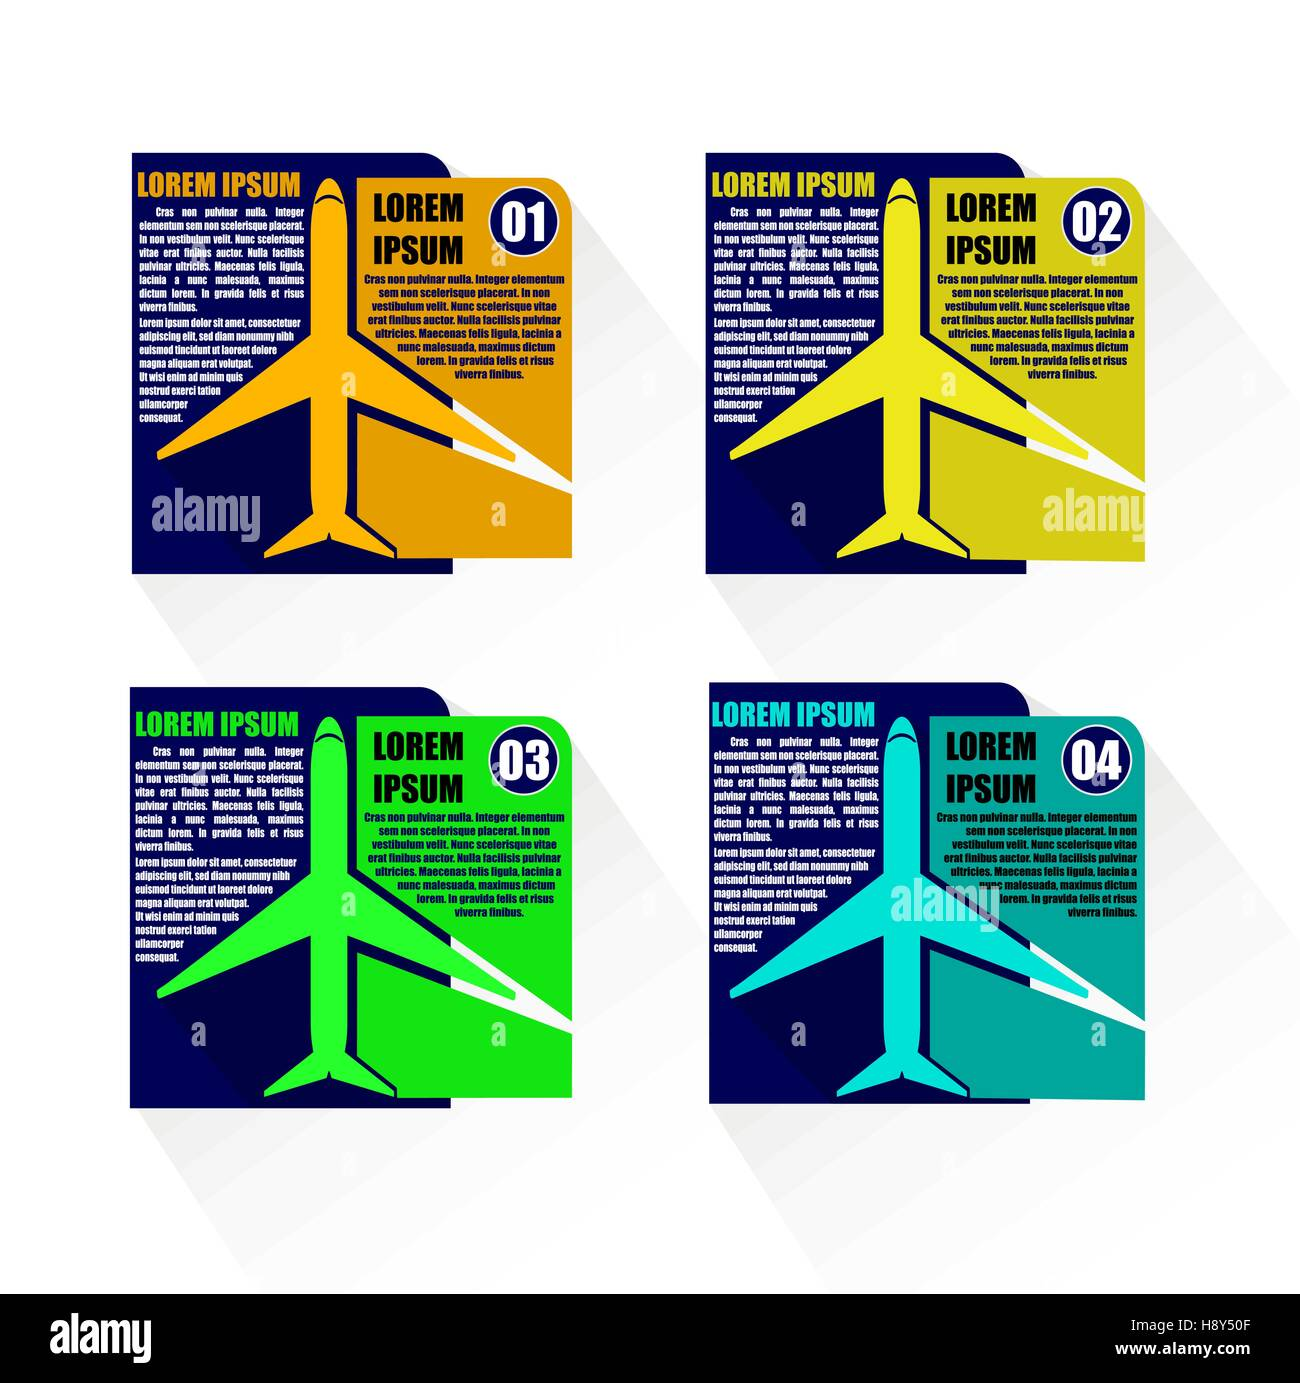 AIRPLANE INFOGRAPHIC TEMPLATE VECTOR ILLUSTRATOR - Stock Image